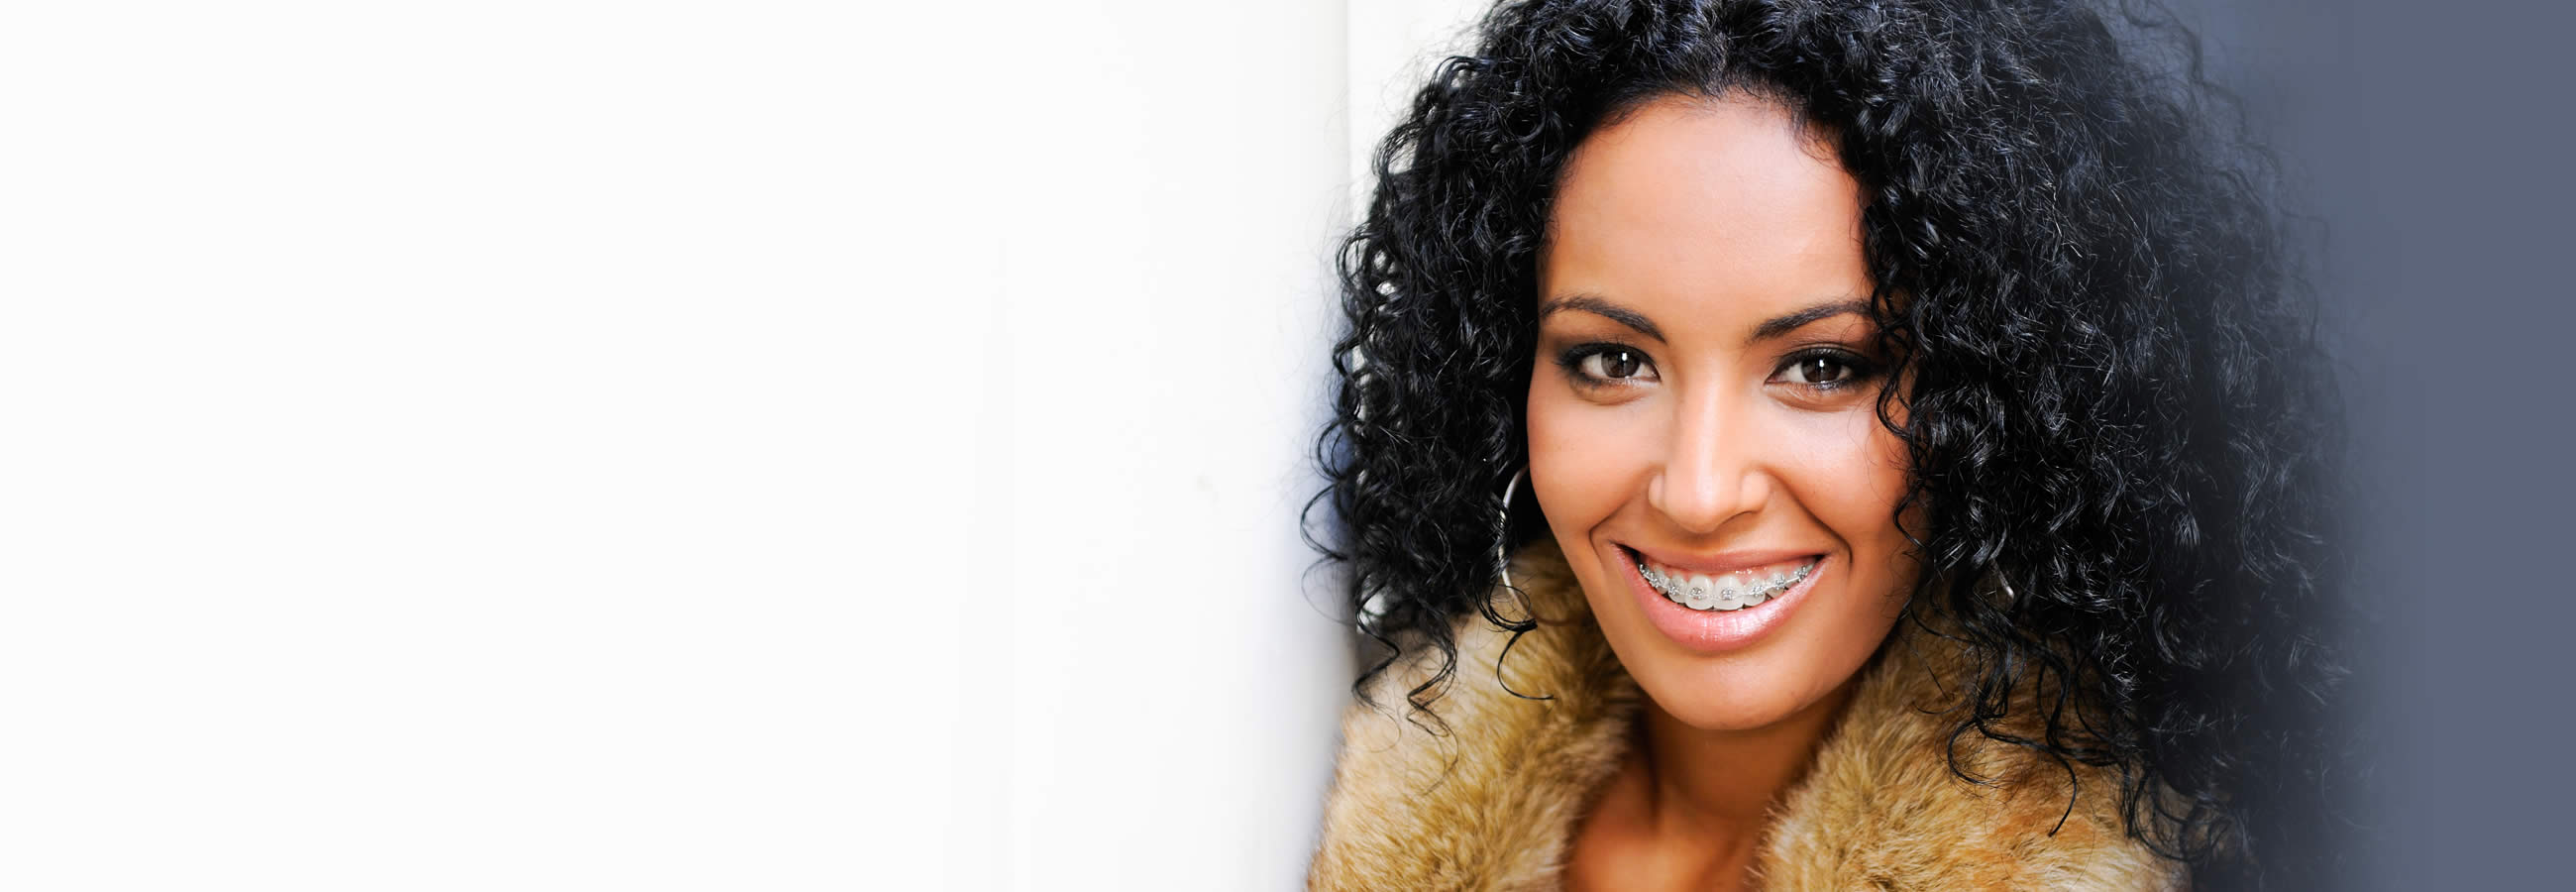 Adult Orthodontics in Borehamwood